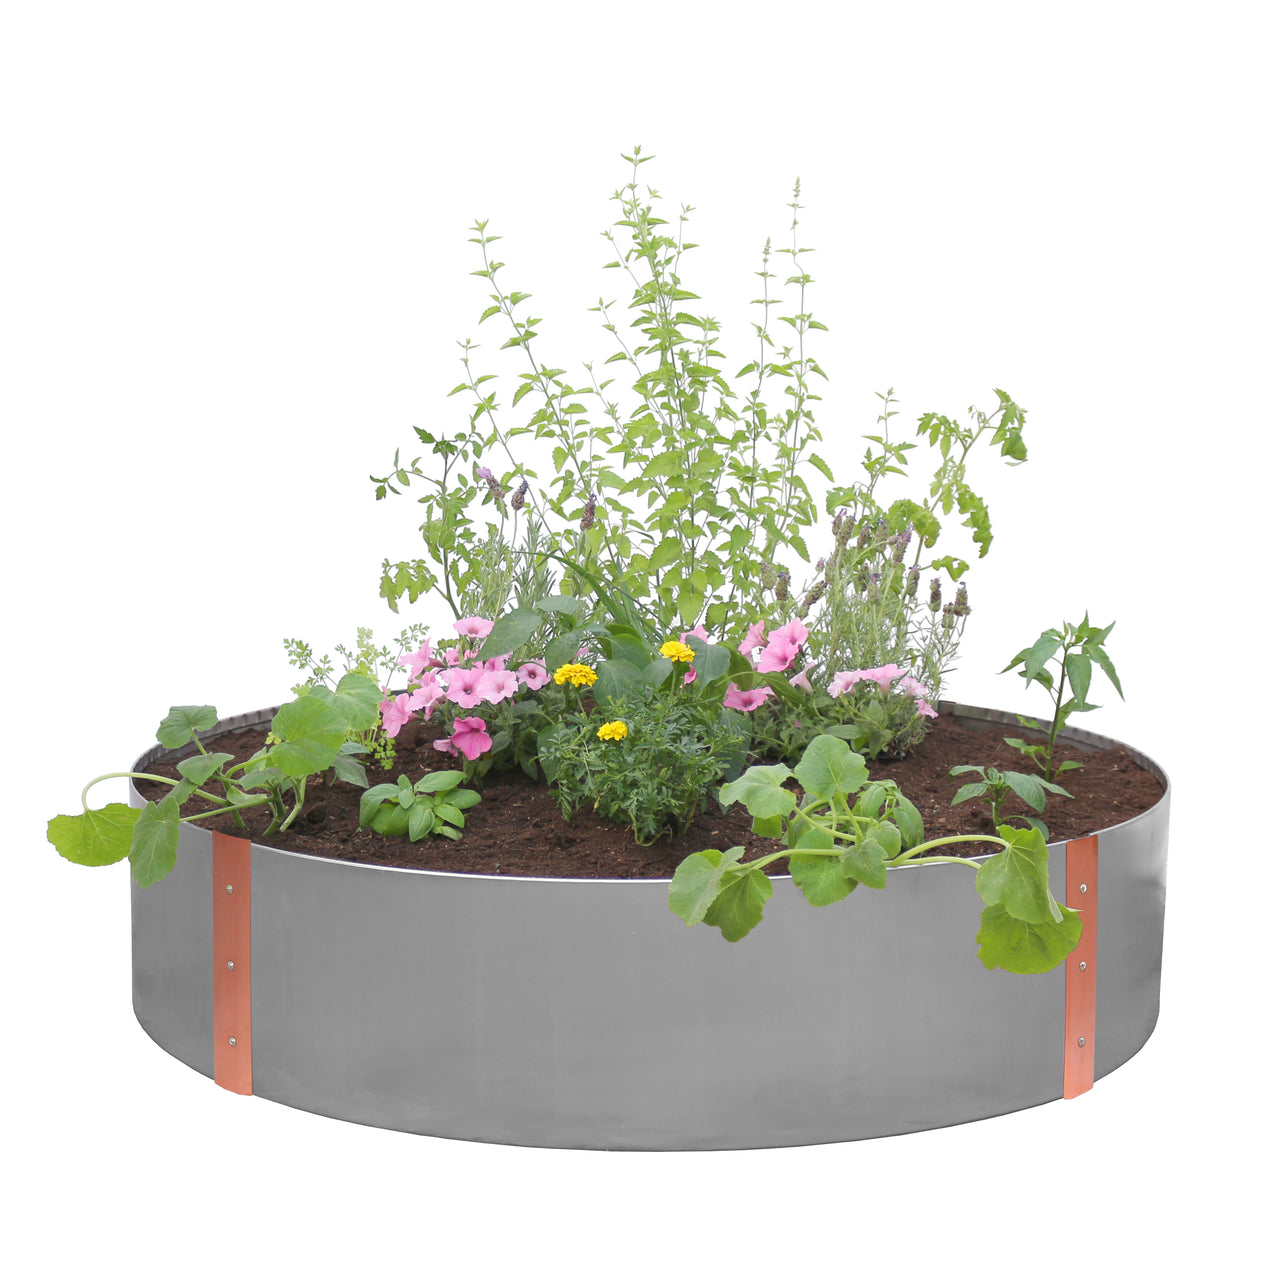 Stainless Steel and Copper Raised Garden Bed - Circle